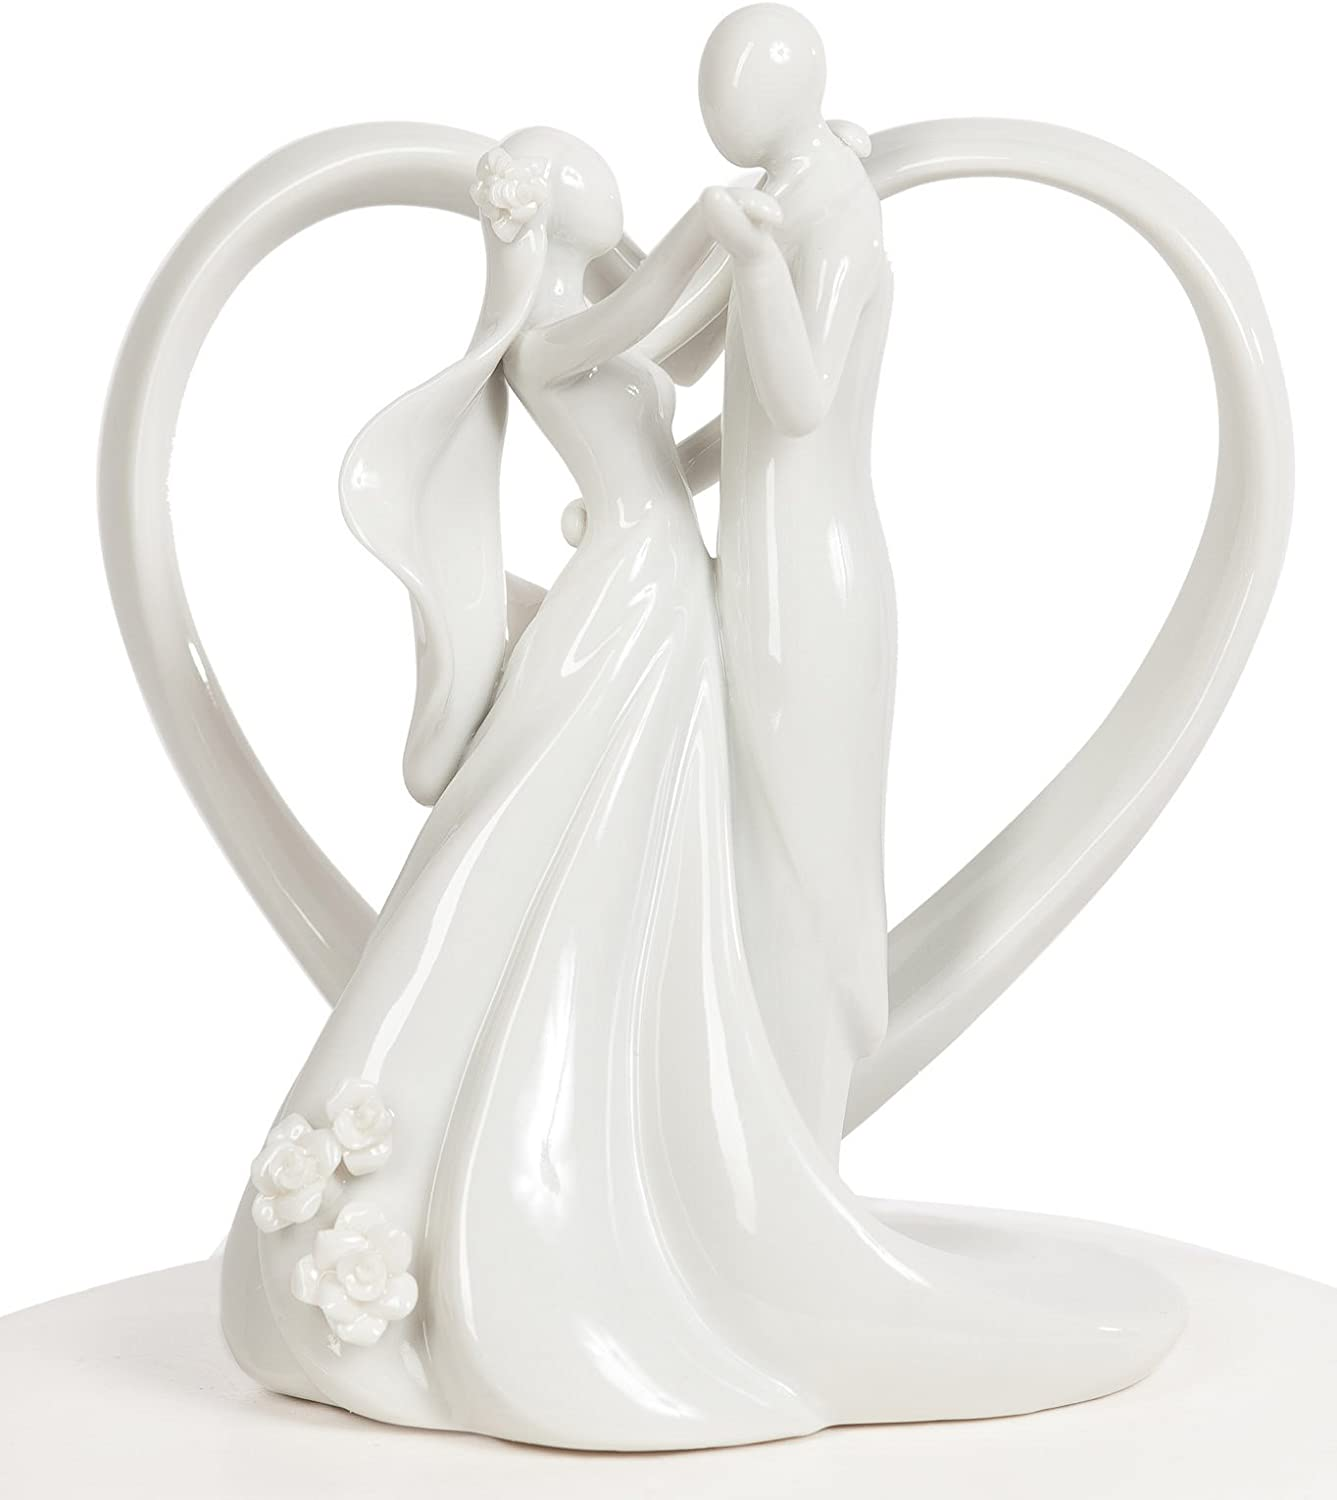 Wedding Collectibles Stylized Dancing Heart Wedding Cake Topper